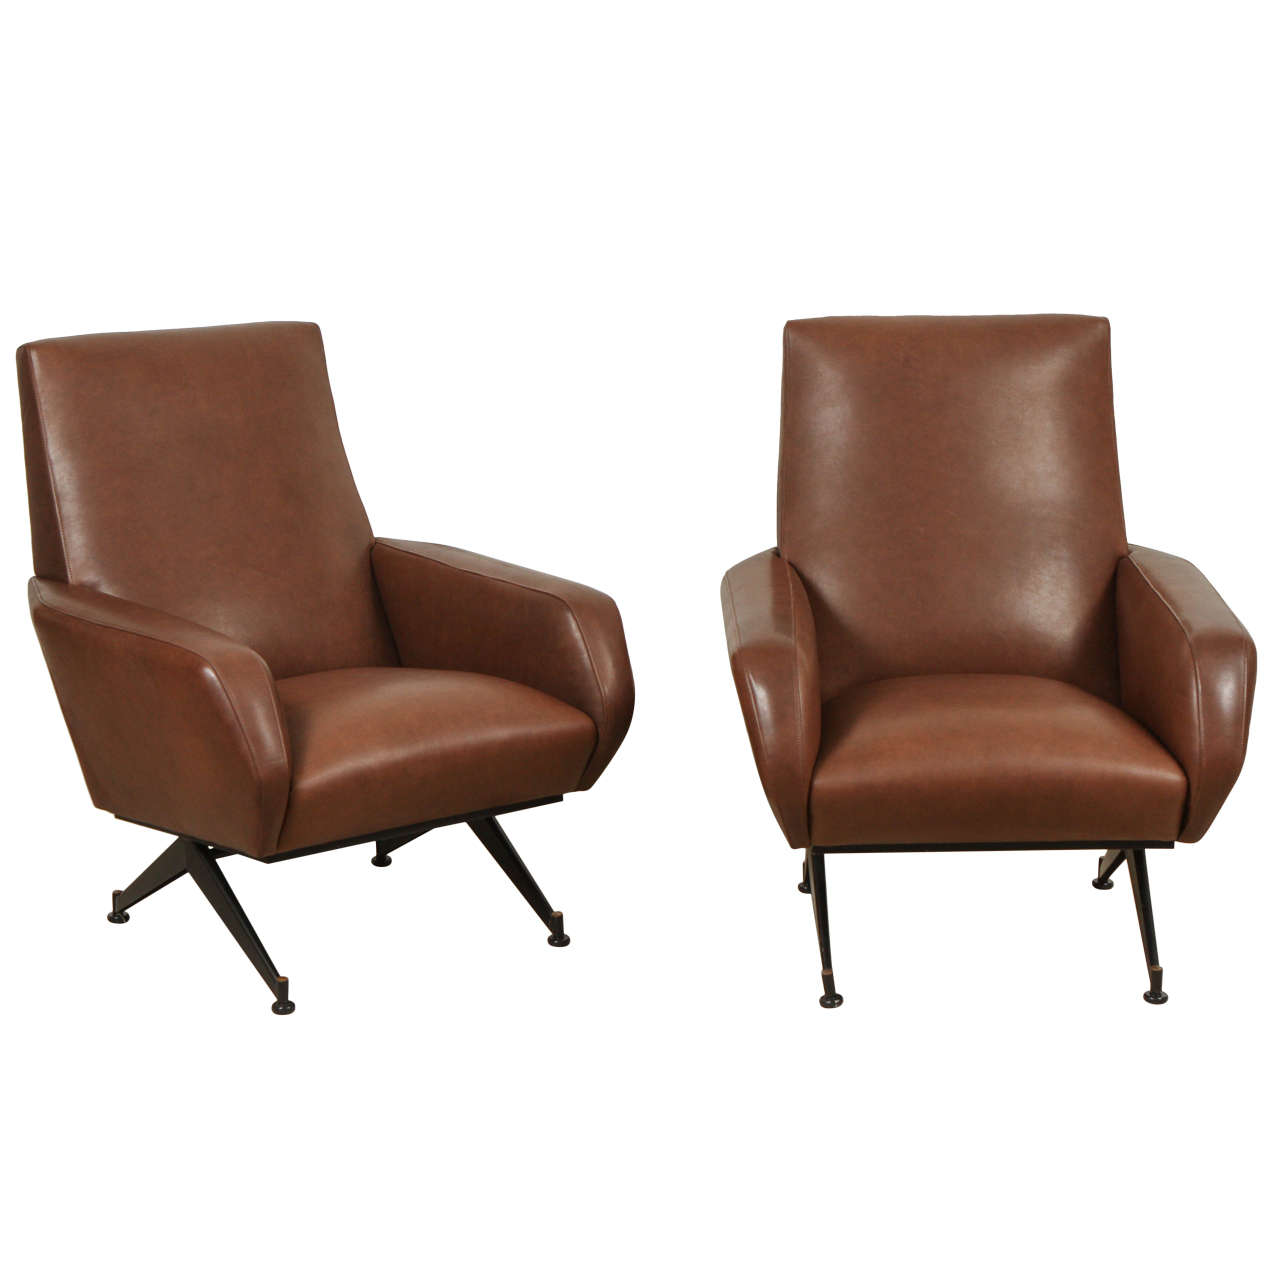 Pair of Italian Leather Chairs in the Style of Arflex